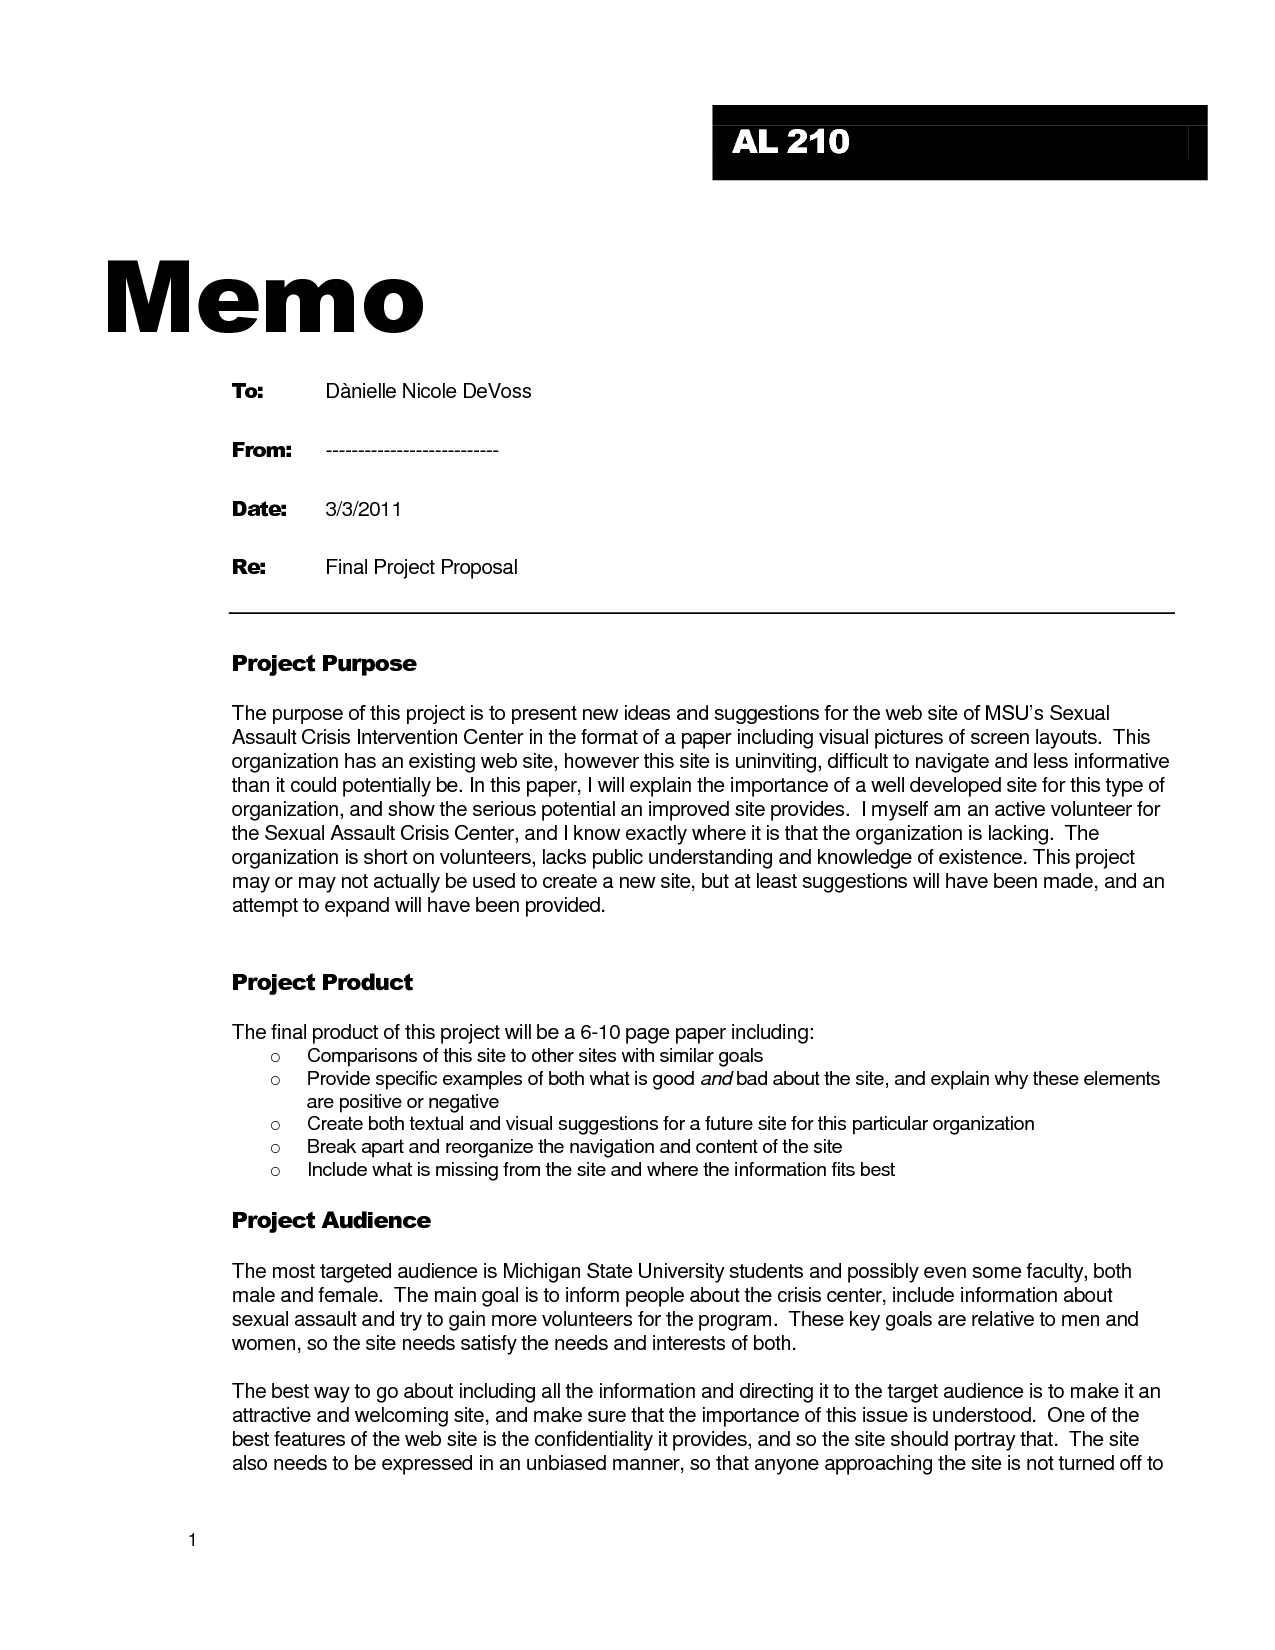 Pin by clickassign.com on essay writing services.   Business memo ...